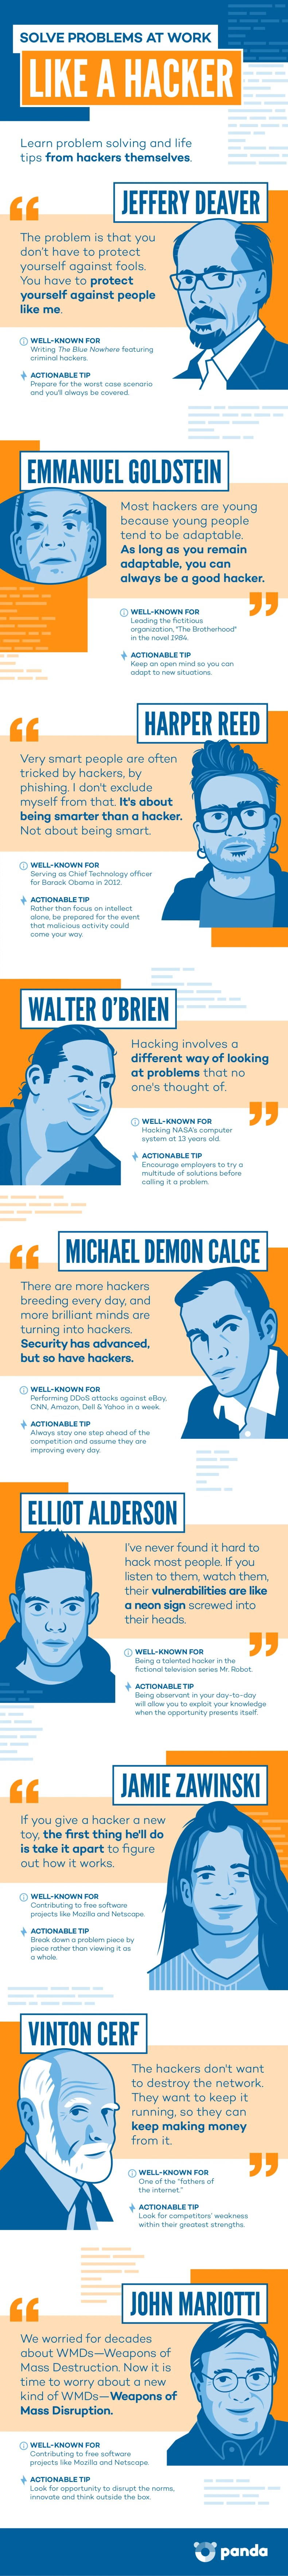 Solve Problems at Work Like a Hacker